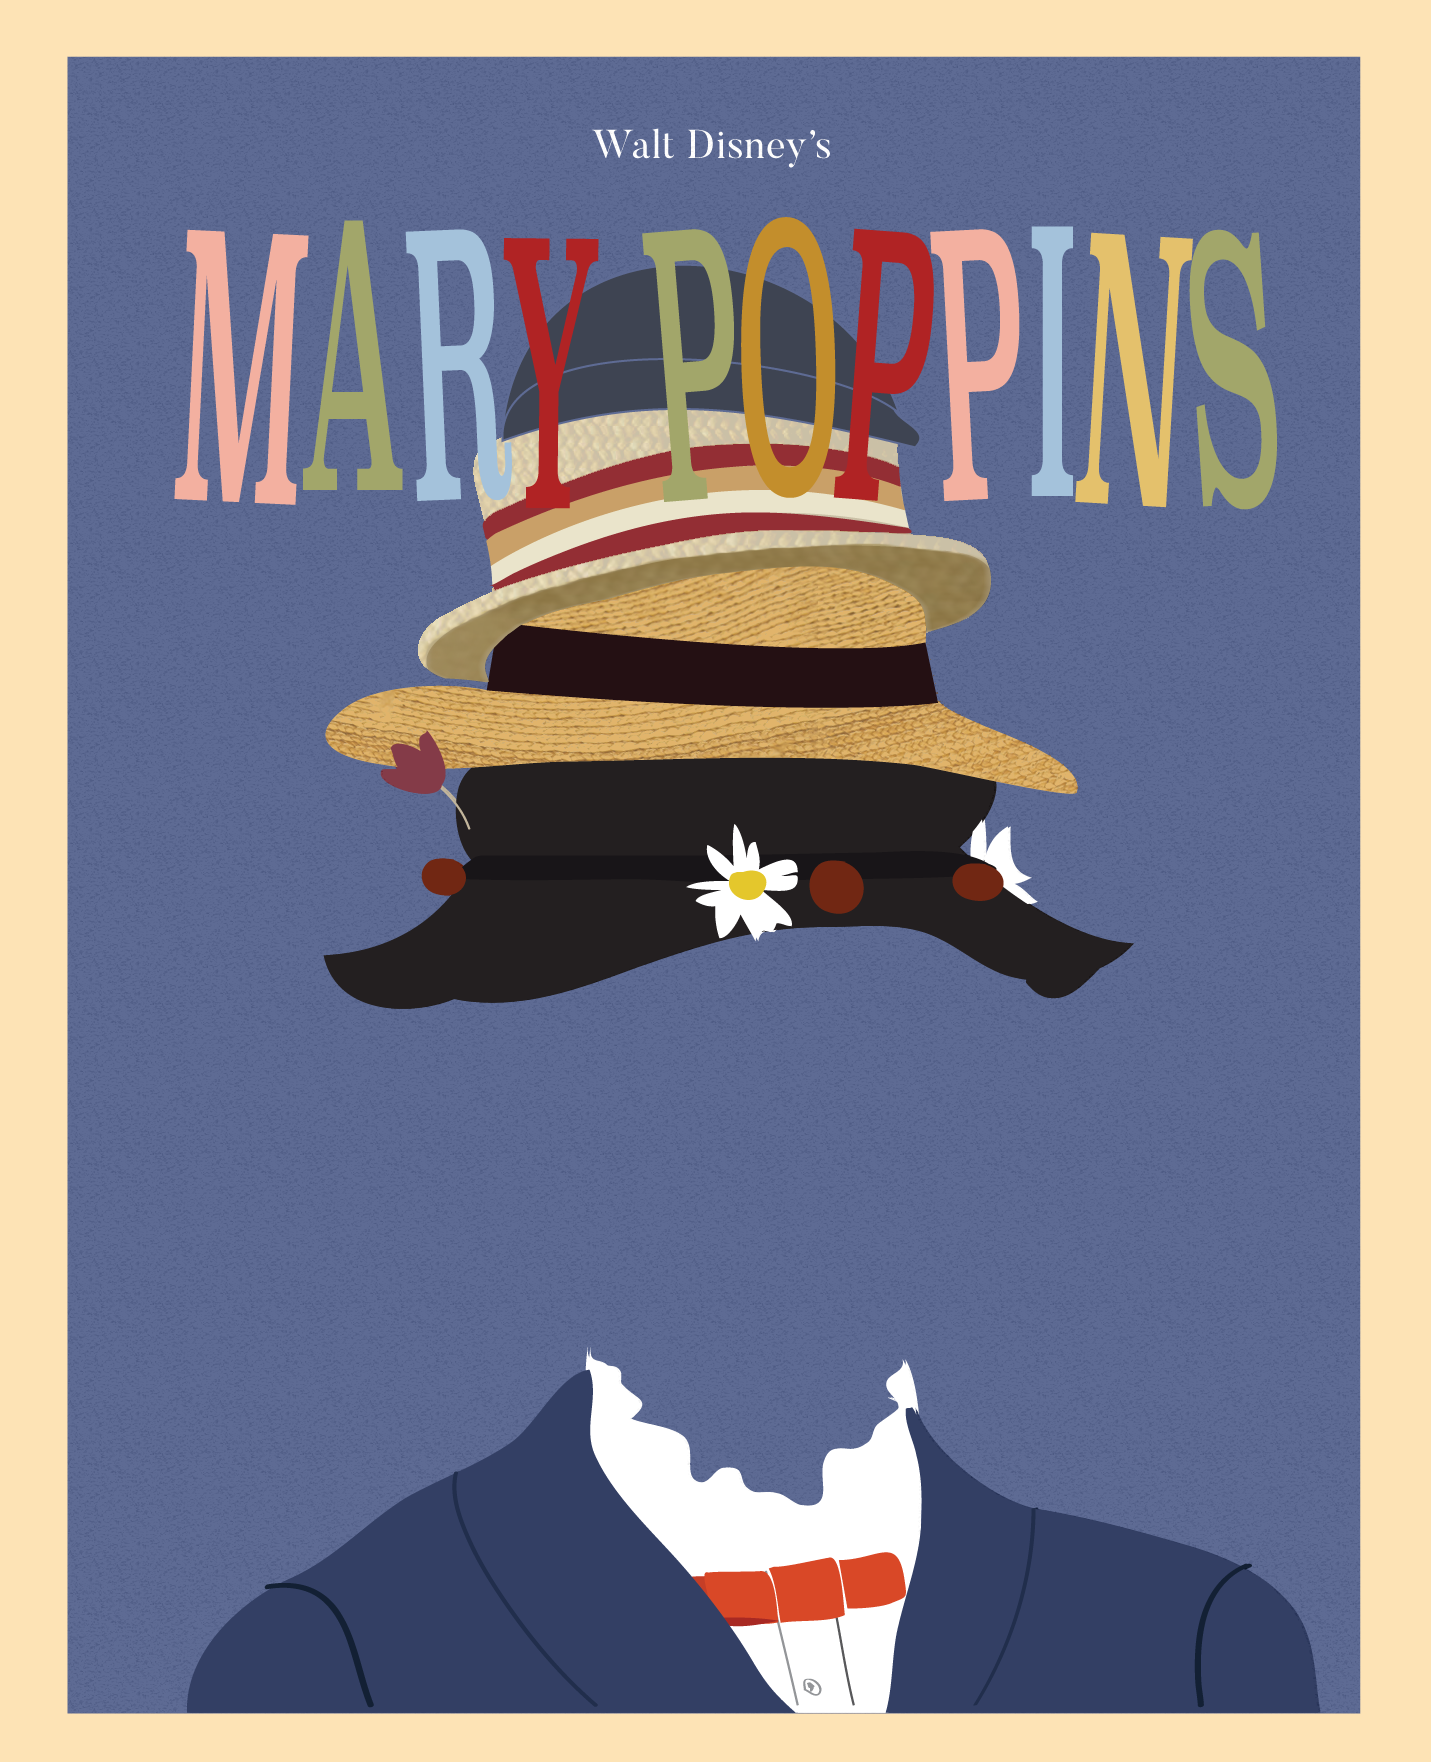 marypoppins_texture.png